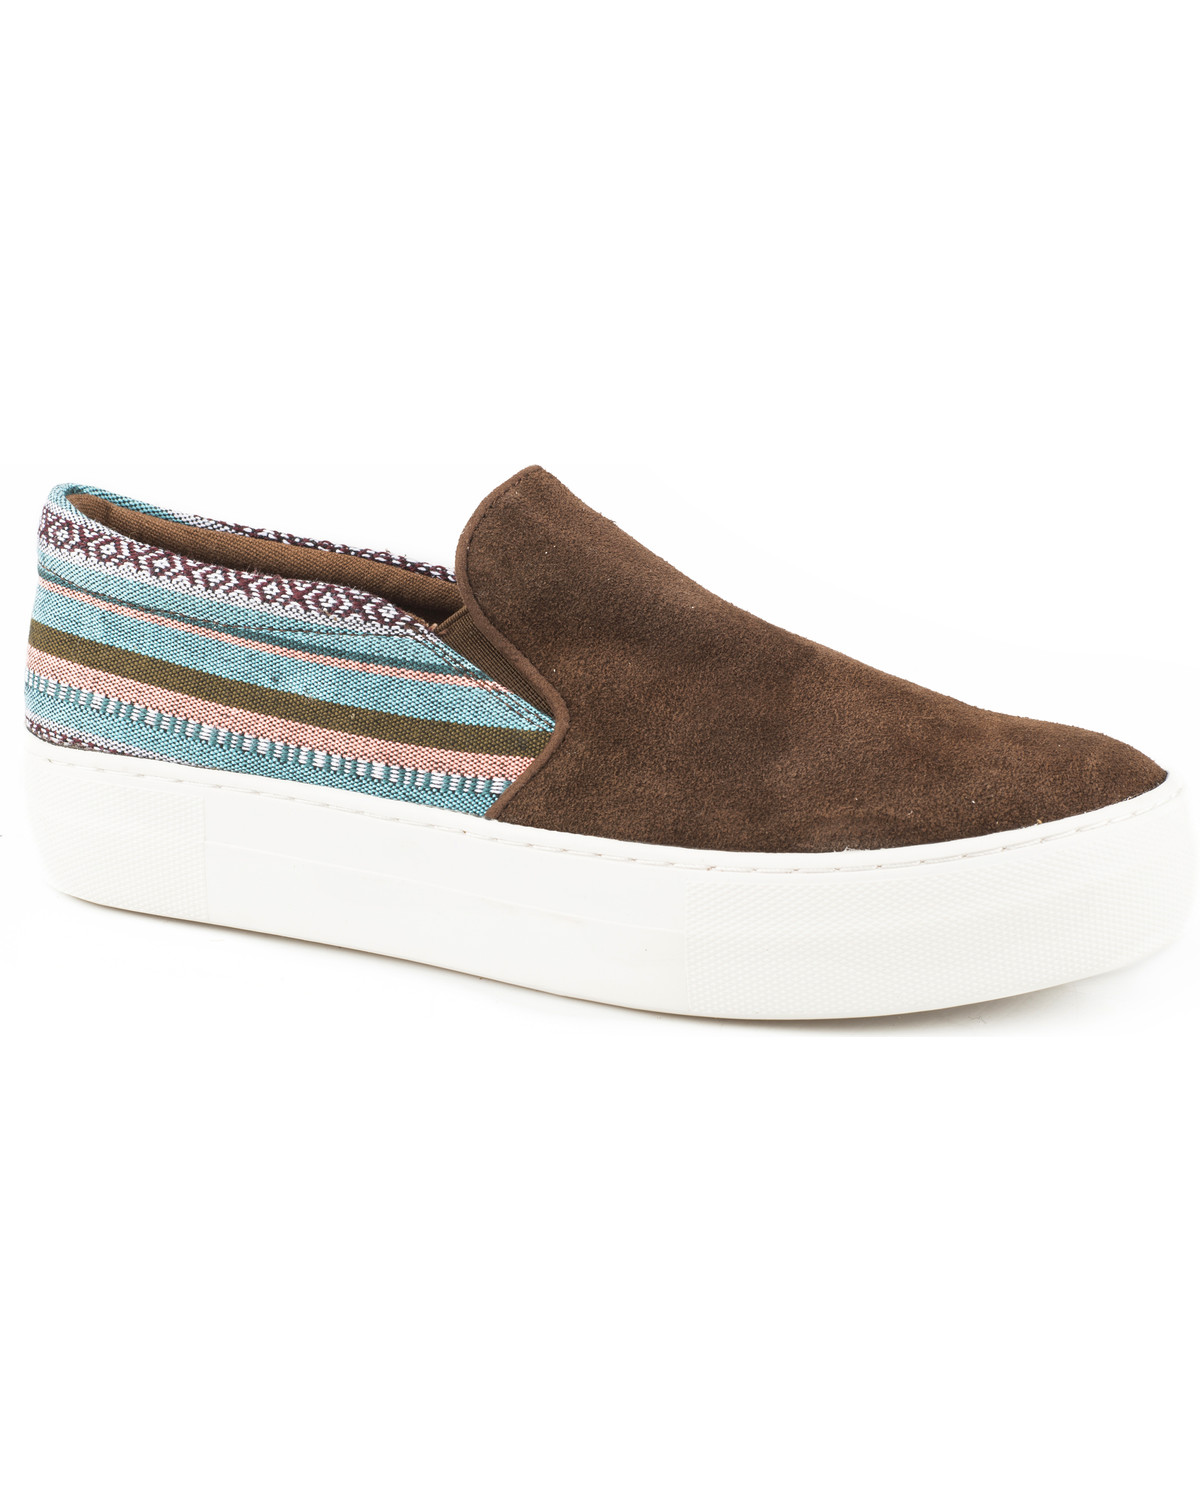 9c8a022c7d Roper Women's Darcy Brown Suede Woven Stripe Slip On Shoes - Round Toe